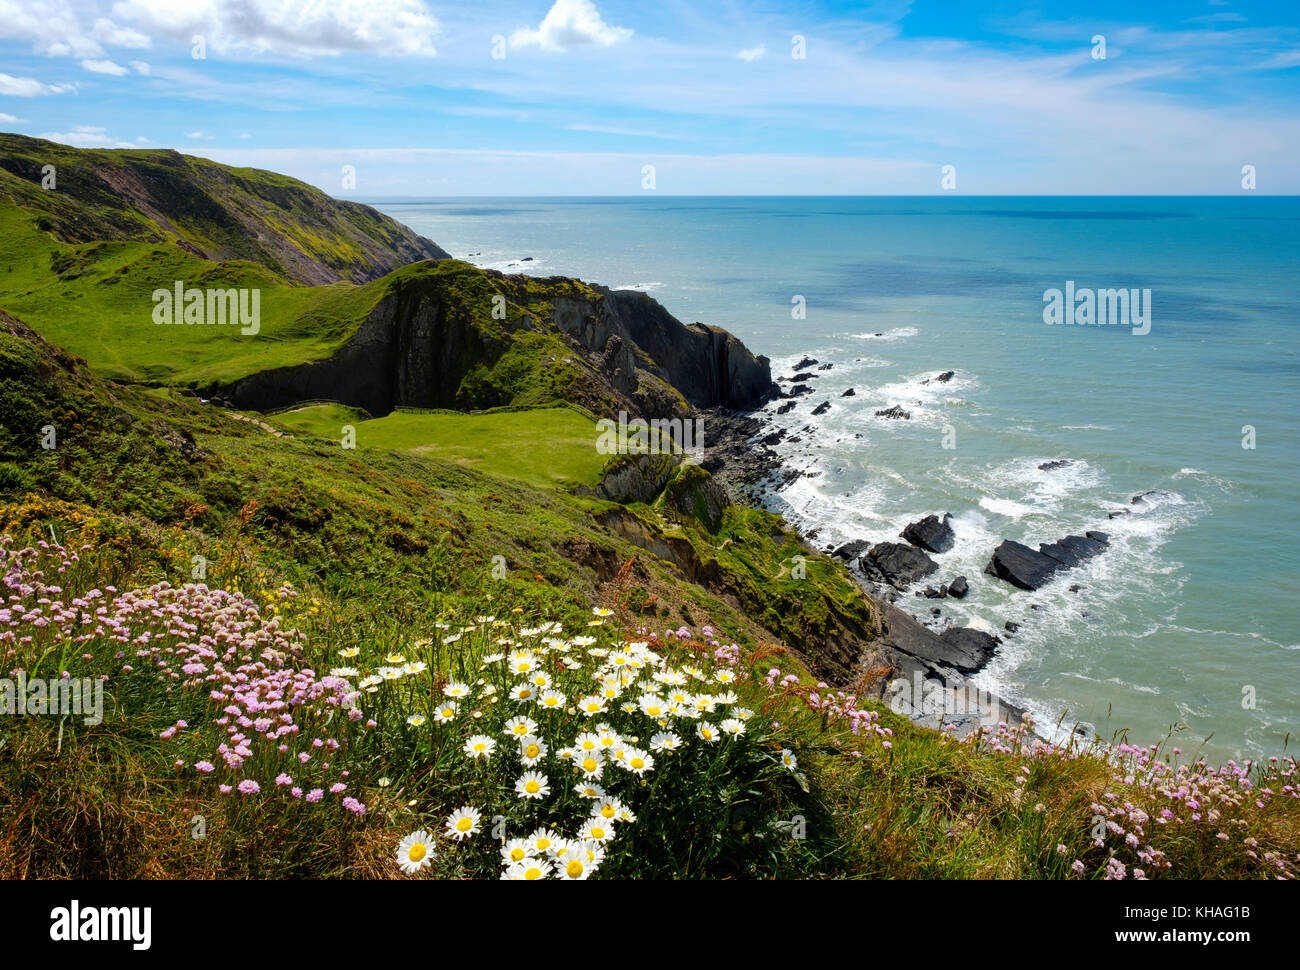 Steep coast, Hartland Quay, Hartland, Devon, England, Great Britain - Stock Image